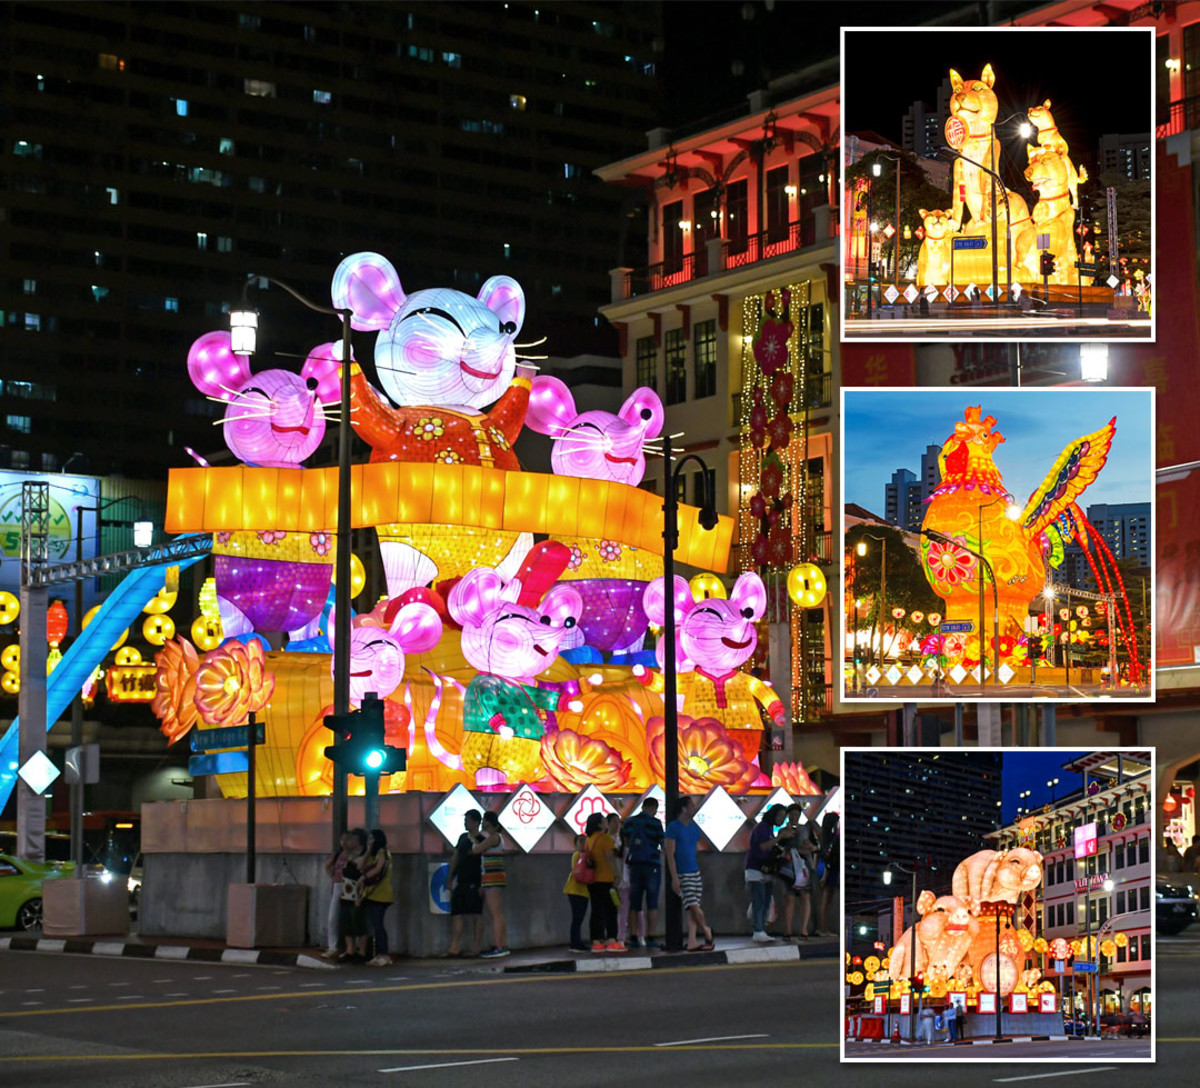 The incoming Chinese Zodiac animal for the New Year is always showcased at the Chinatown festive Light-Up. The showpiece for this picture is that for Year of the Rat 2020.